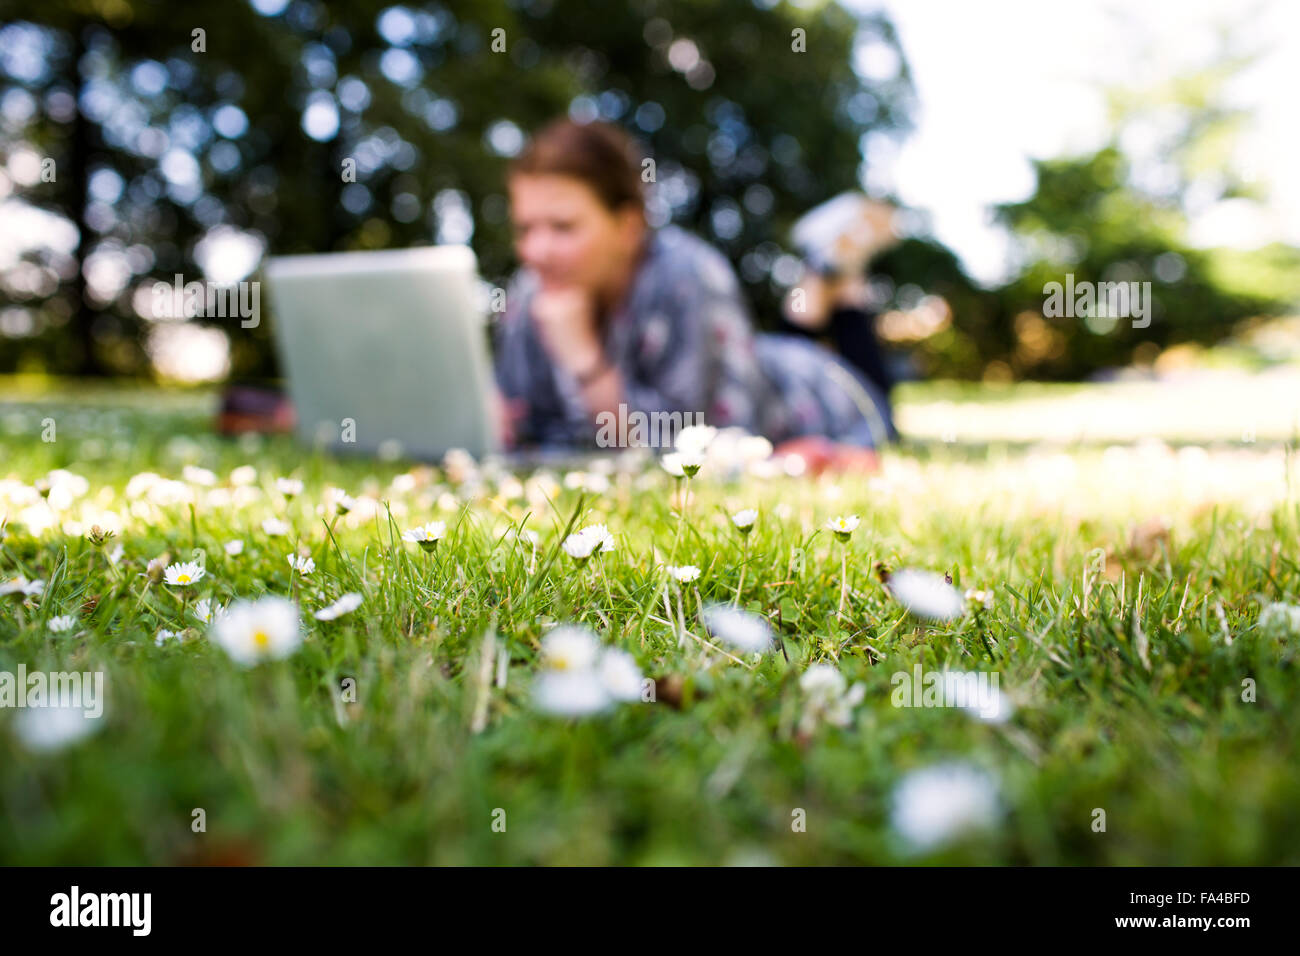 Freelancer using laptop while lying on grass at park - Stock Image